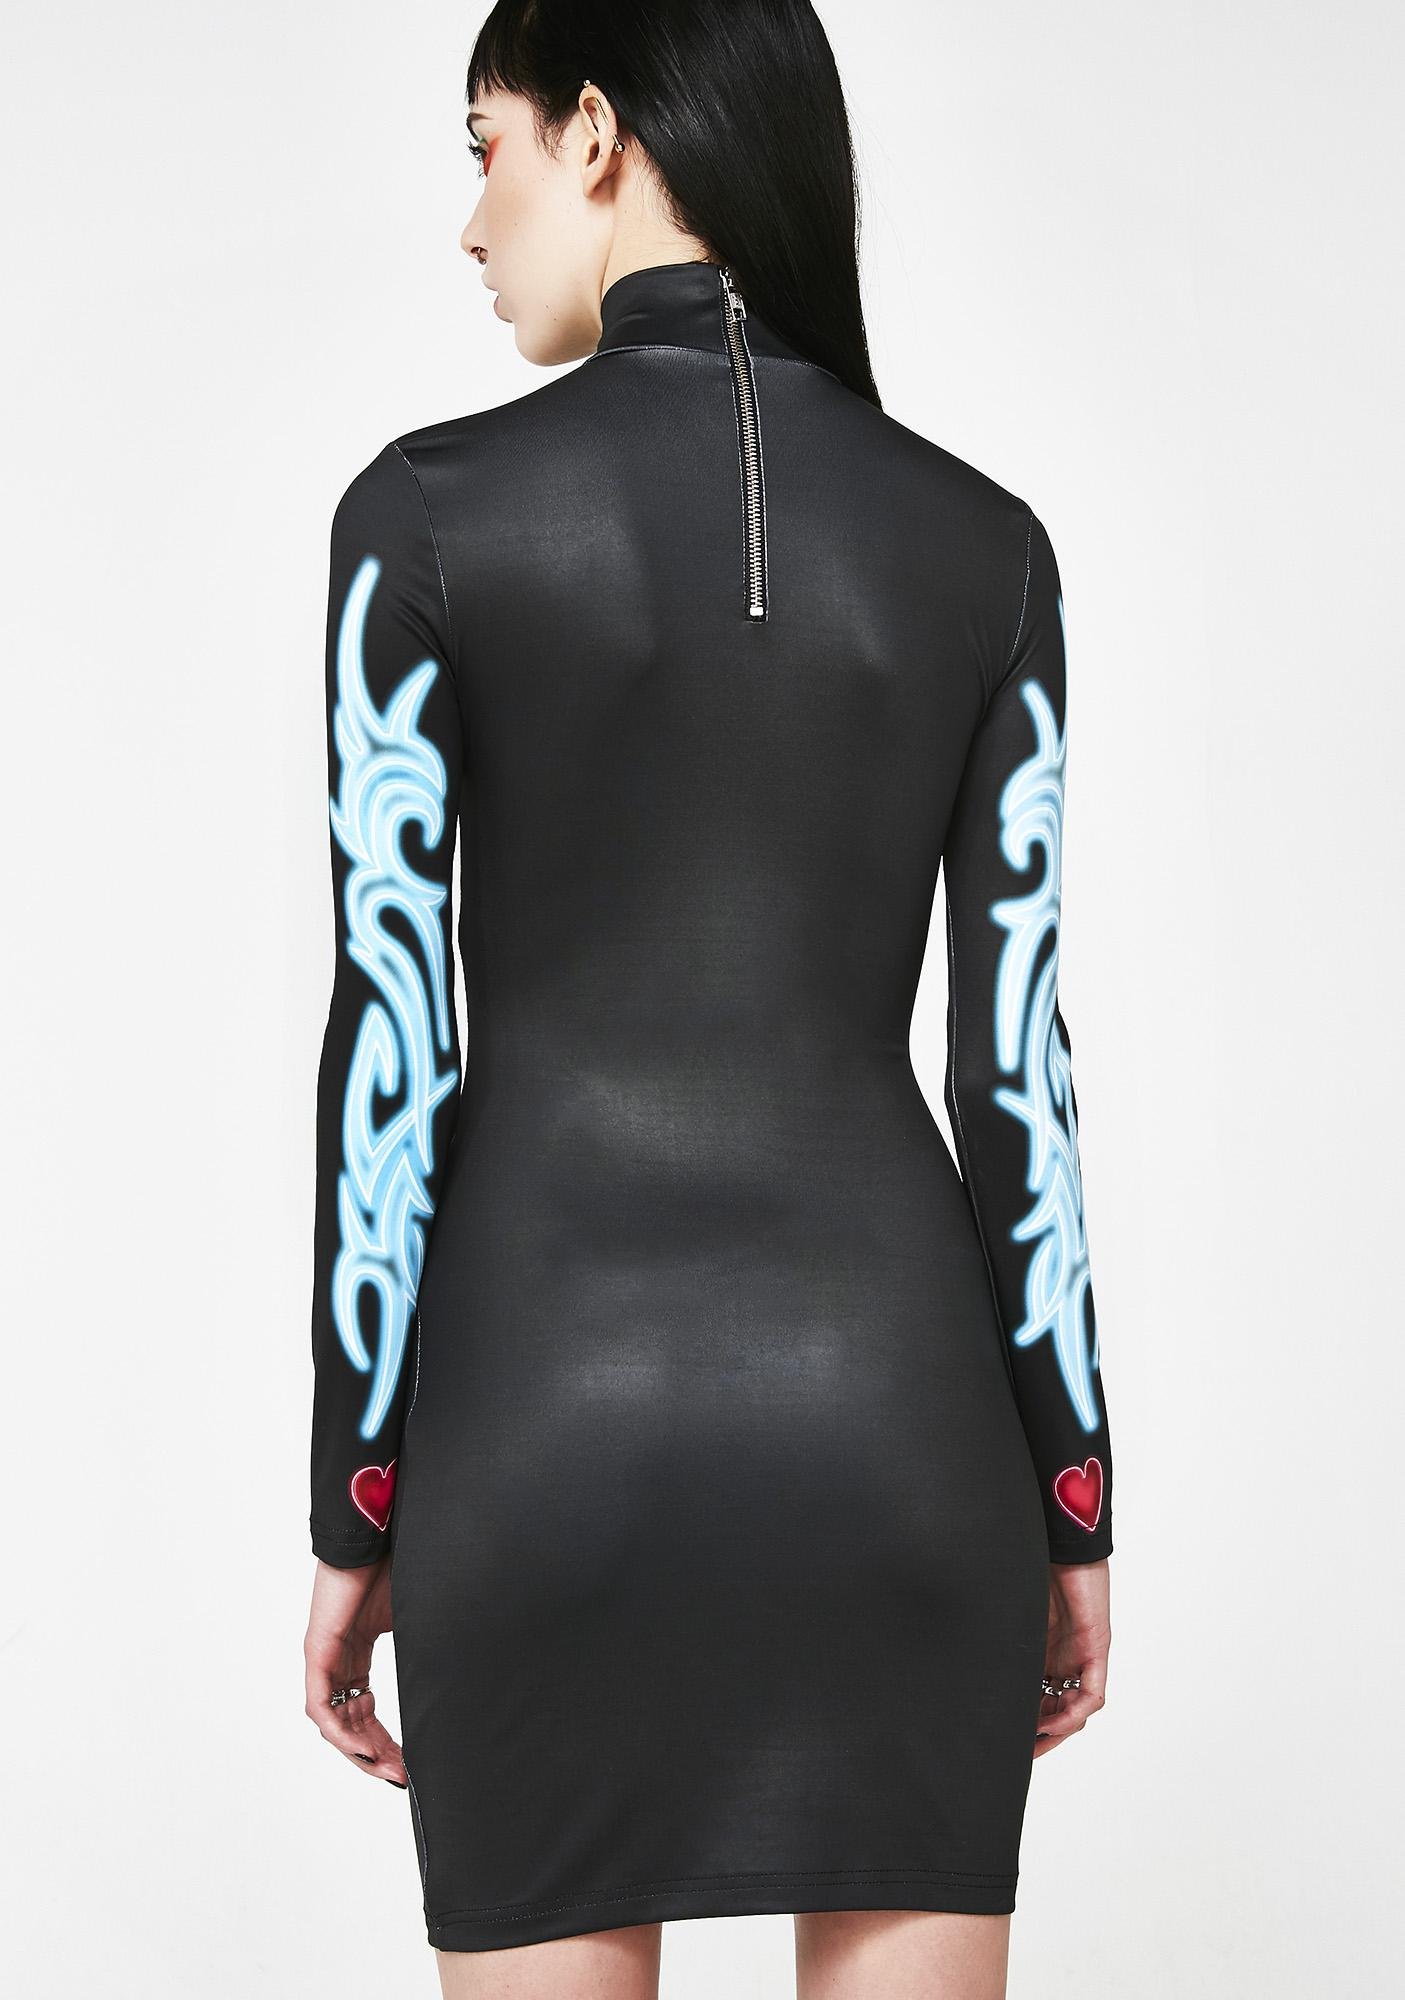 Long Clothing x Nympha Spellbound Dress